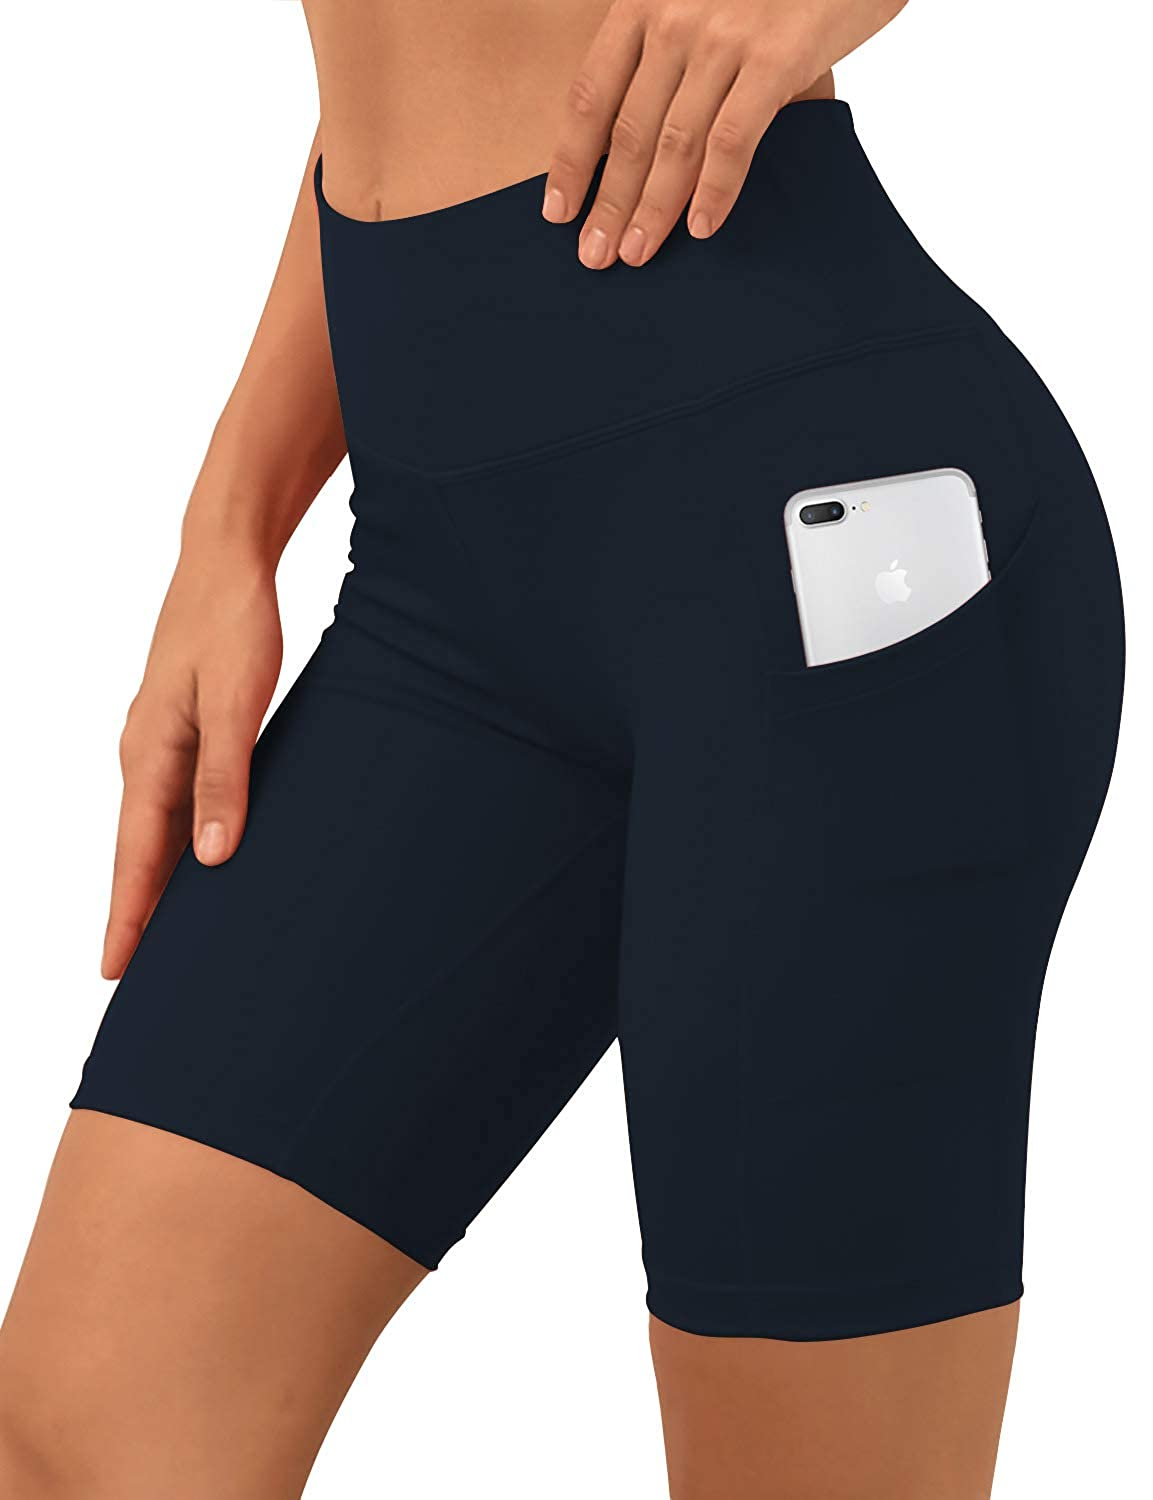 Bwsb030 Darknavy& xFF08;8 inseam) BUBBLELIME 2.5   4  Inseam Out Pocket Yoga Shorts Running Shorts Active